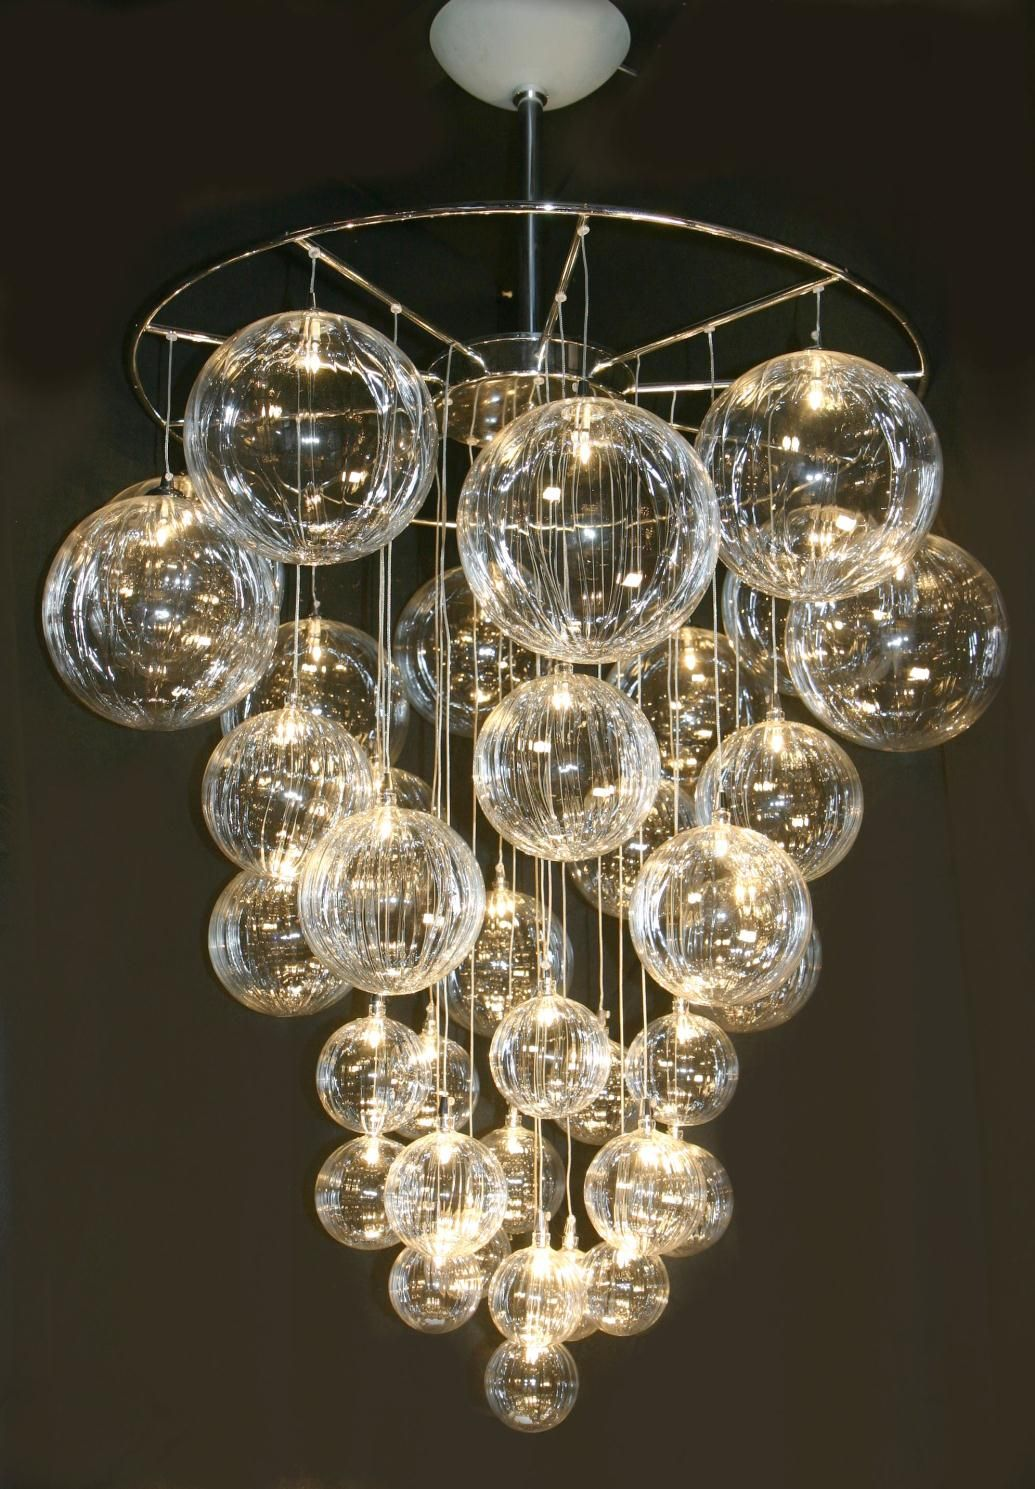 modern lights chandeliers – Modern Chandelier Lights